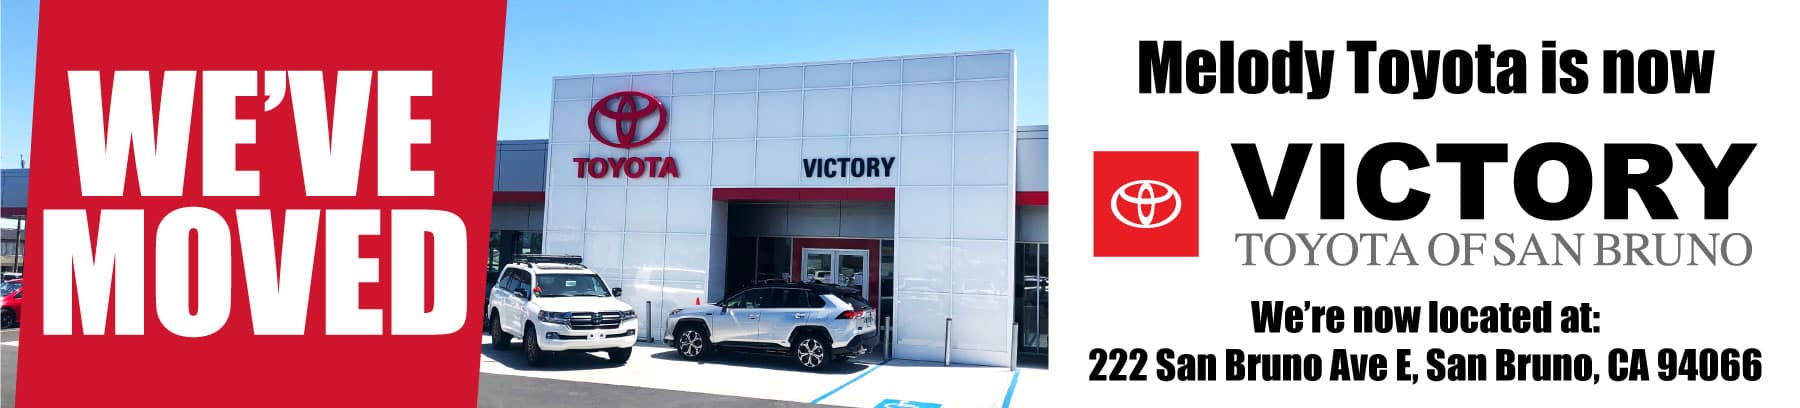 Melody Toyota is now Victory Toyota San Bruno